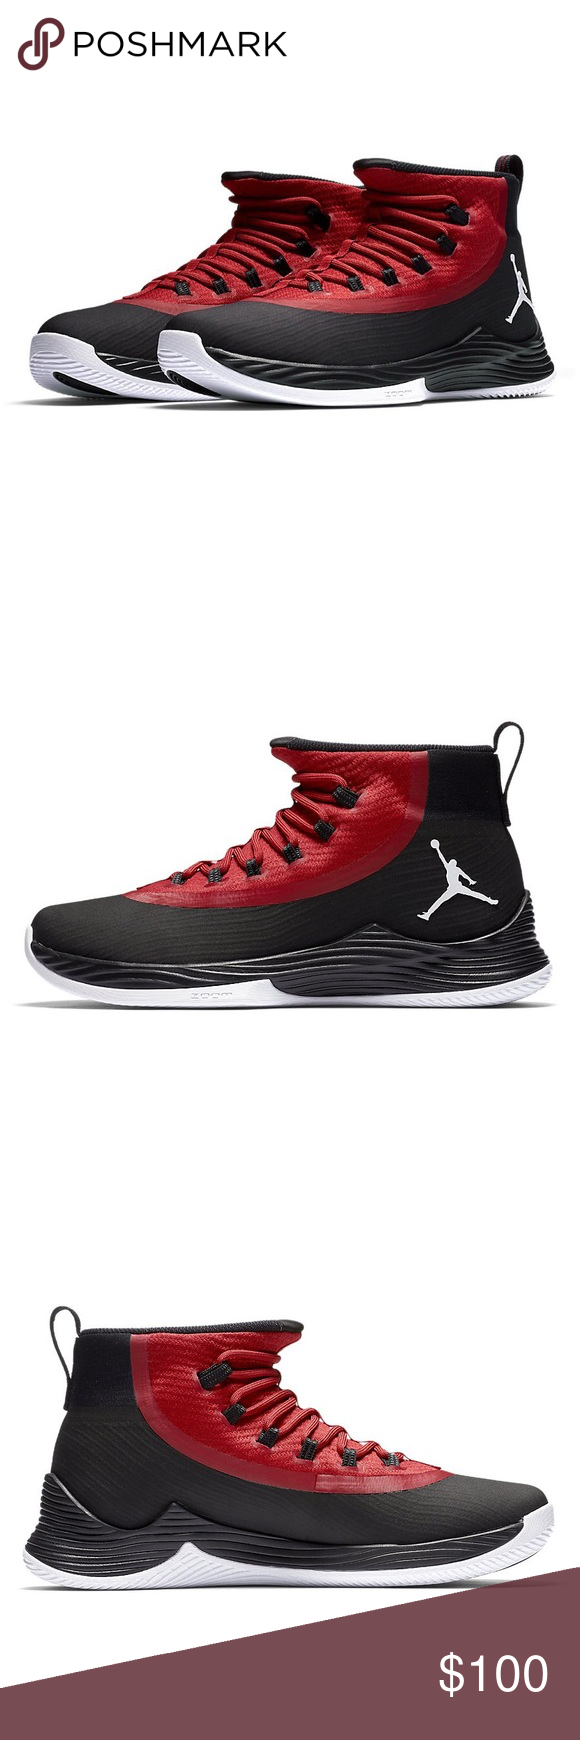 03d3579327e8 Nike Jordan Ultra Fly 2 for Men ✨100% AUTHENTIC✨ ✨Color  Black   White    University Gym Red ❤️Part of the Fly Series